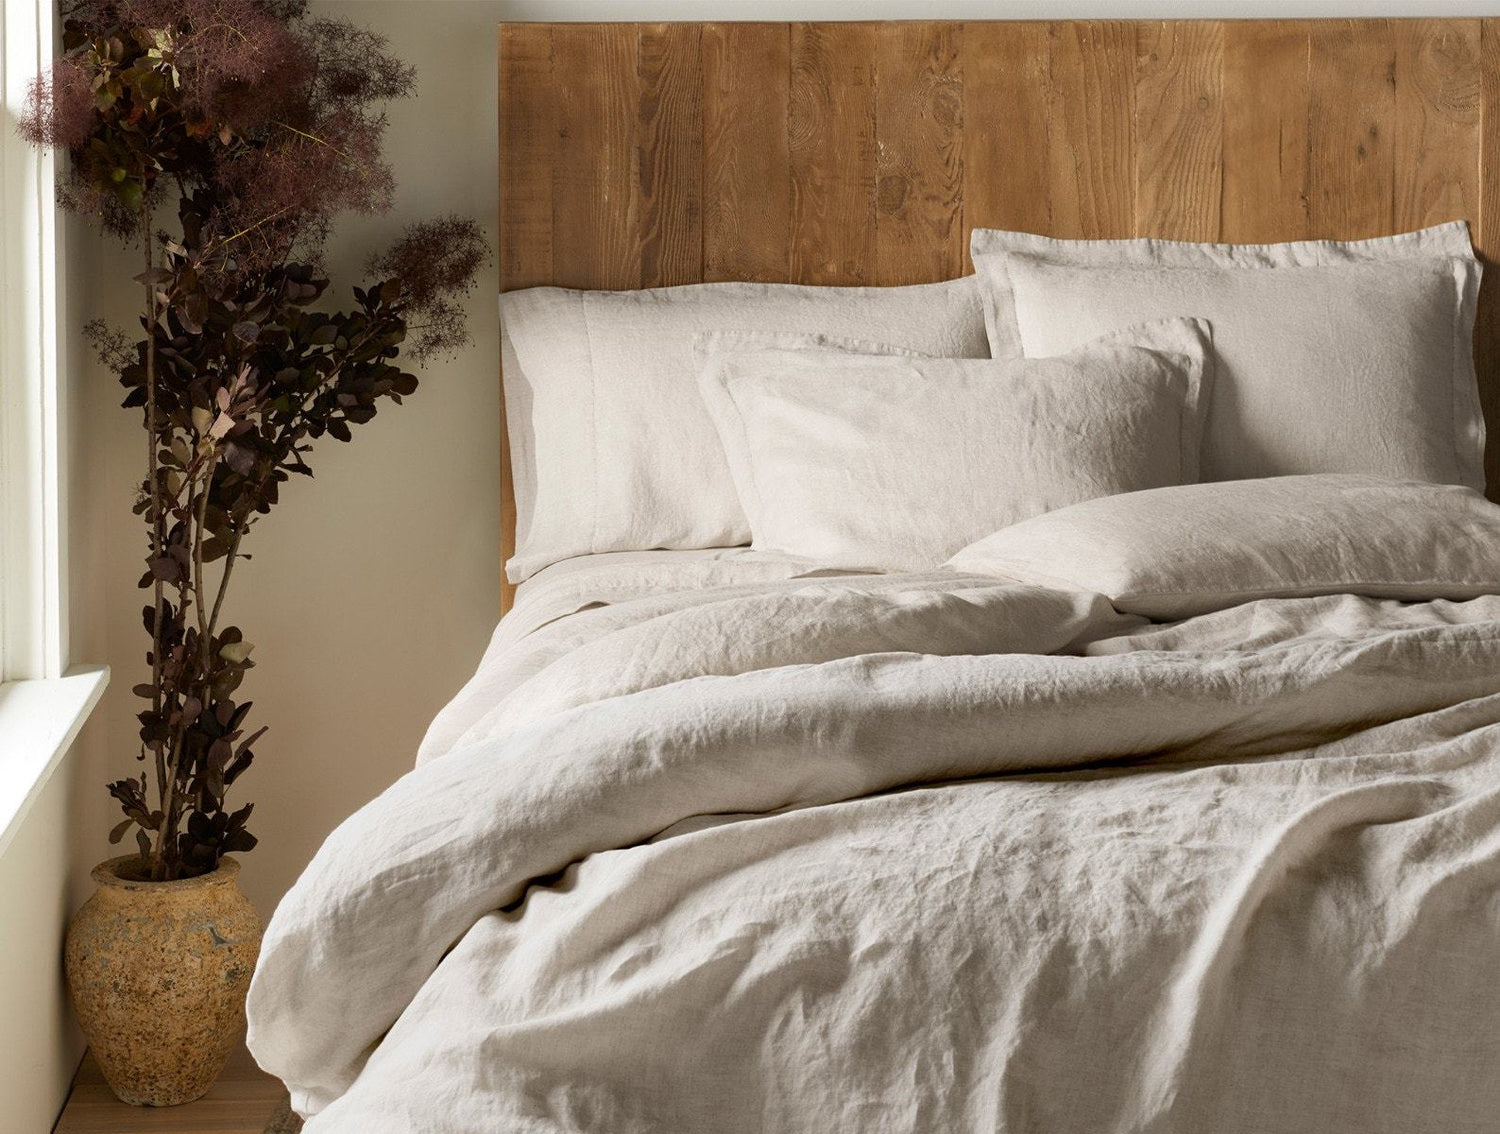 Coyuchi Organic Relaxed Linen Duvet Cover - Natural Chambray Bedding and Bath Coyuchi